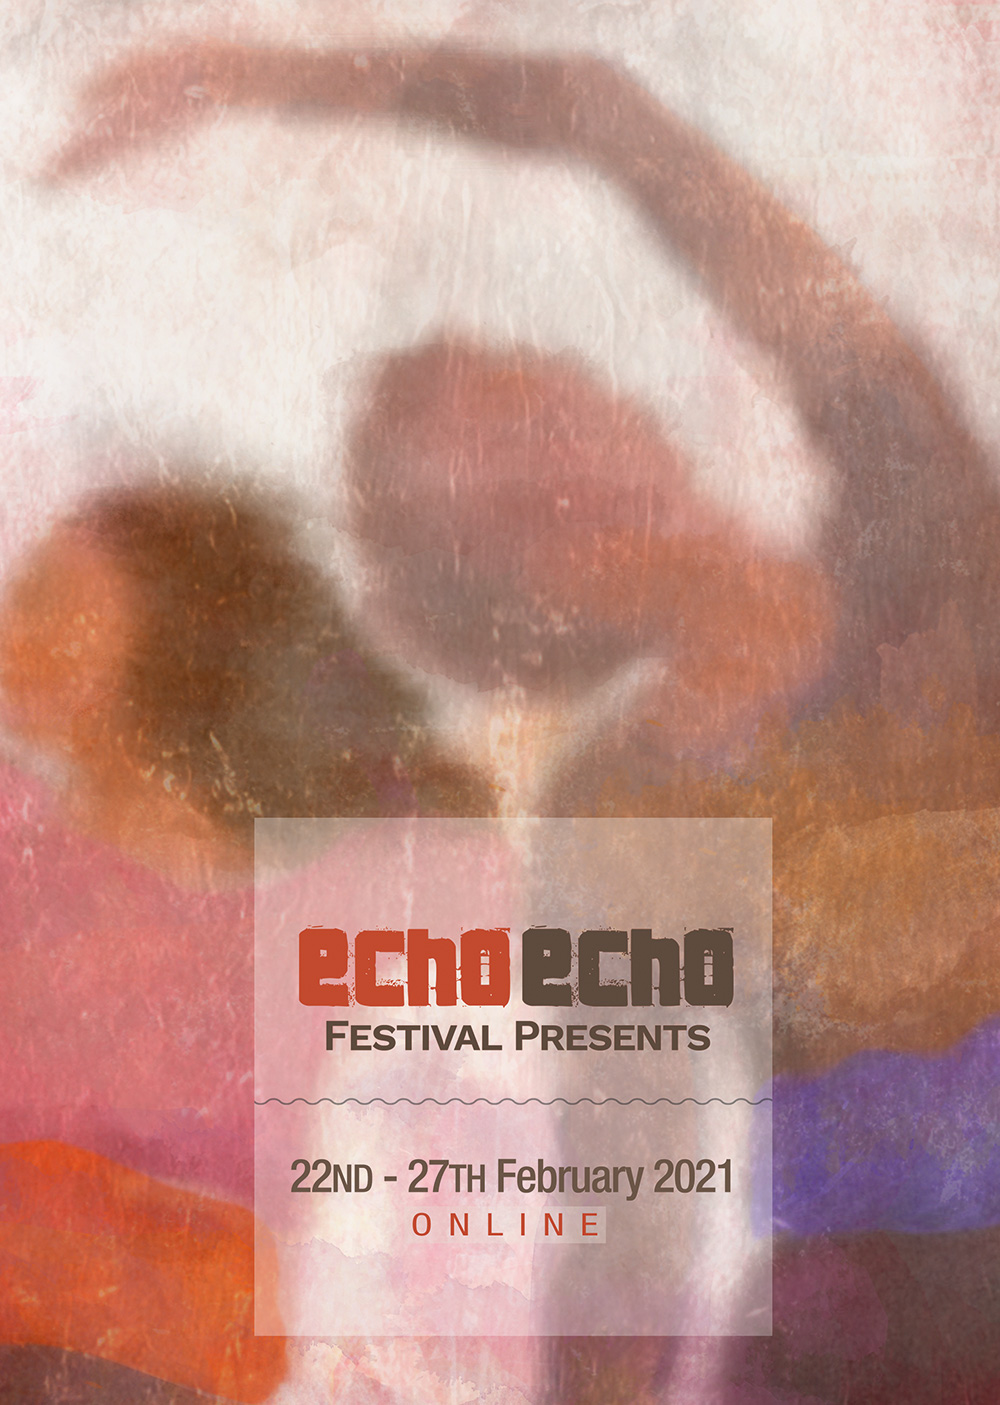 Echo Echo Festival Presents artwork